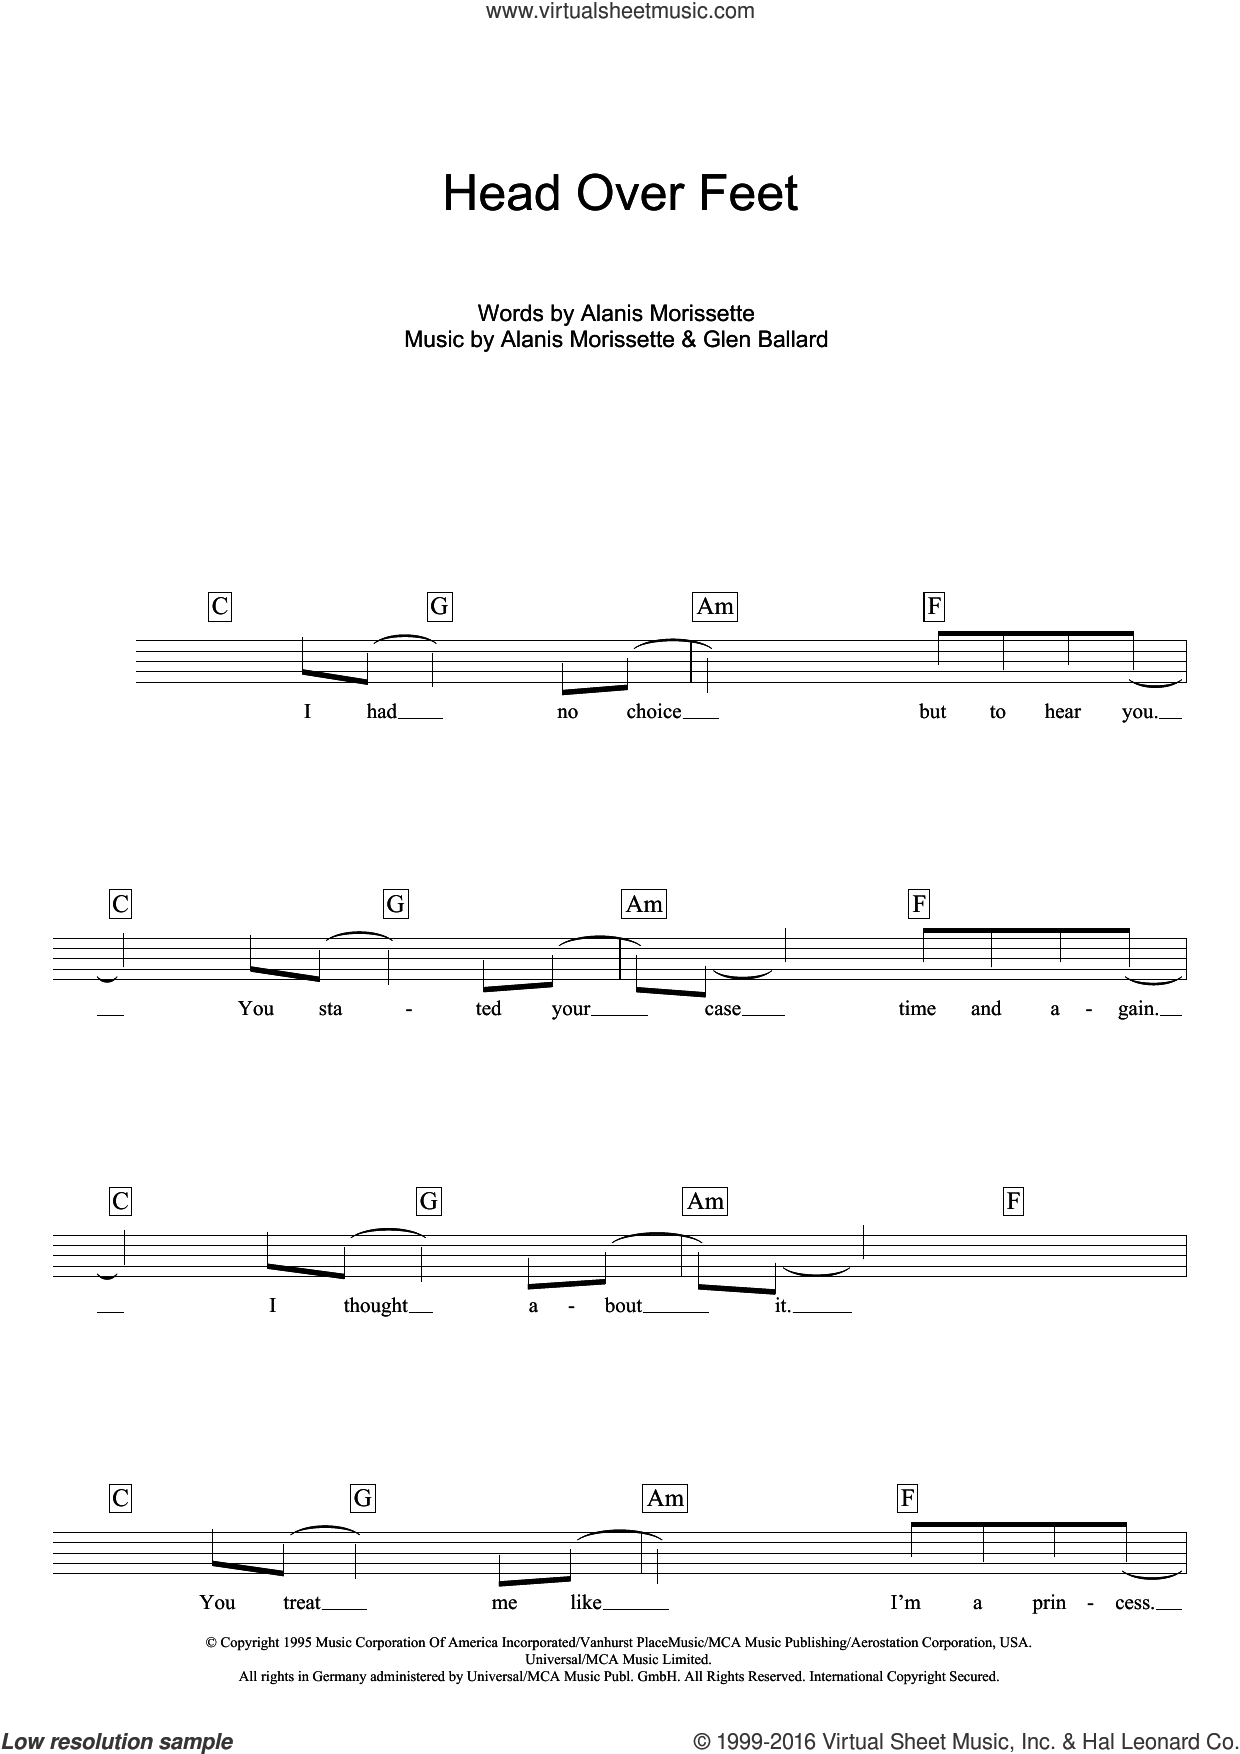 Head Over Feet sheet music for voice and other instruments (fake book) by Alanis Morissette and Glen Ballard, intermediate skill level